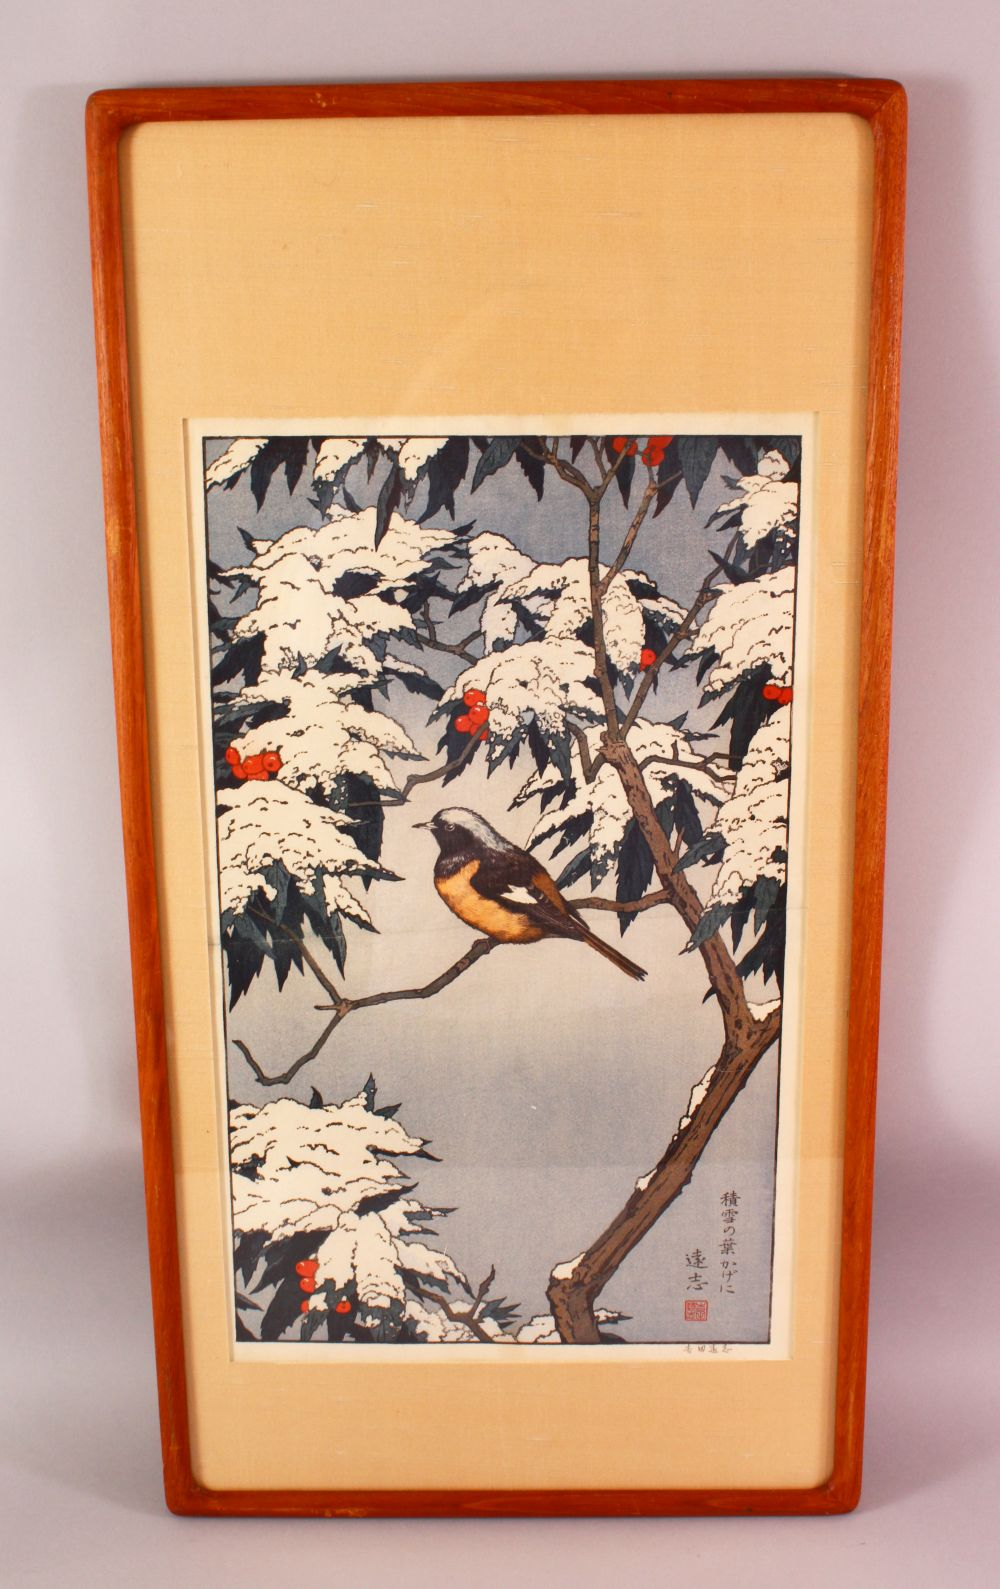 A LARGER JAPANESE WOODBLOCK PRINT BY TOSHI YOSHIDA 1911 - 1995, sitting under snow covered